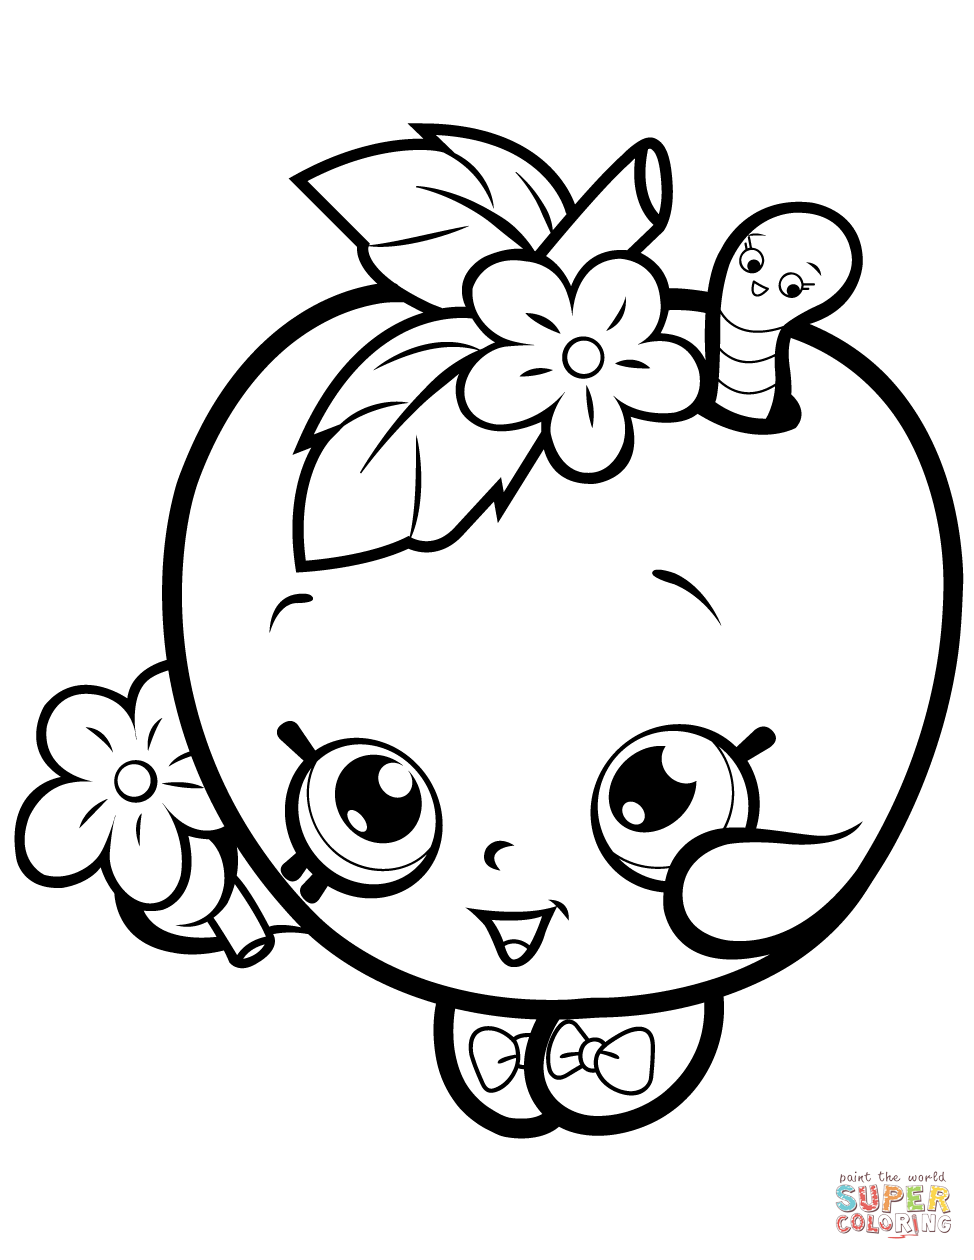 974x1260 Apple Blossom Shopkin Coloring Page Free Printable Coloring Pages